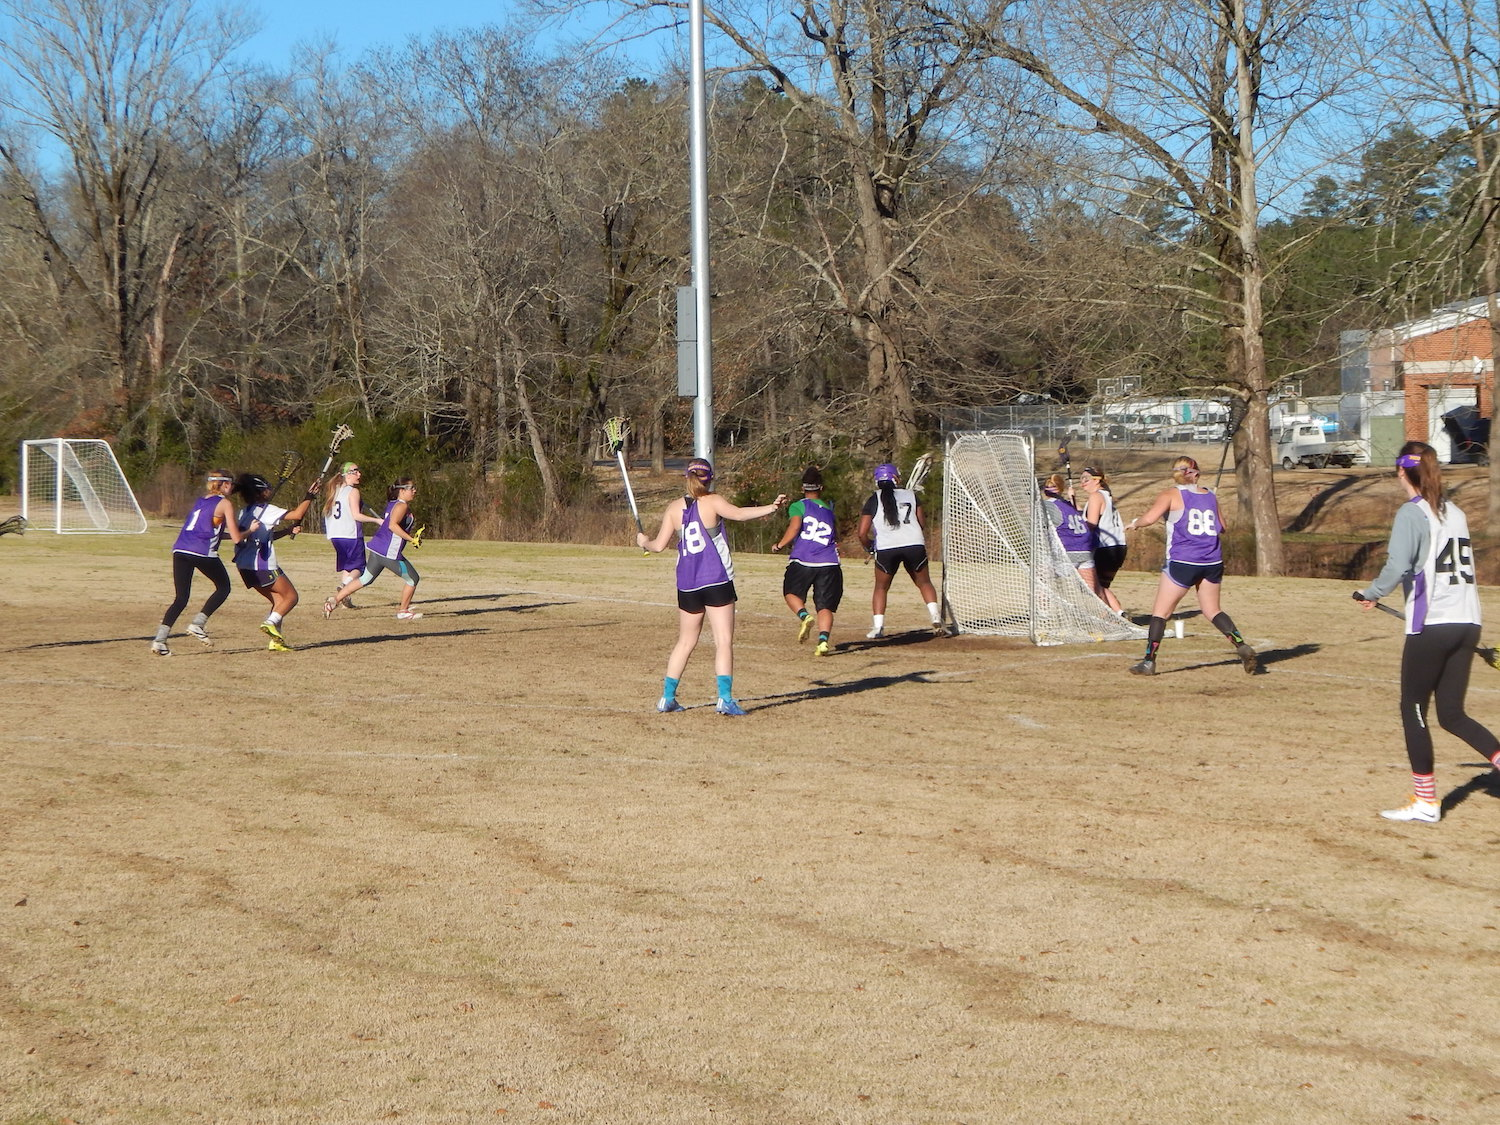 Members of the lacrosse team square off in a scrimmage during practice.